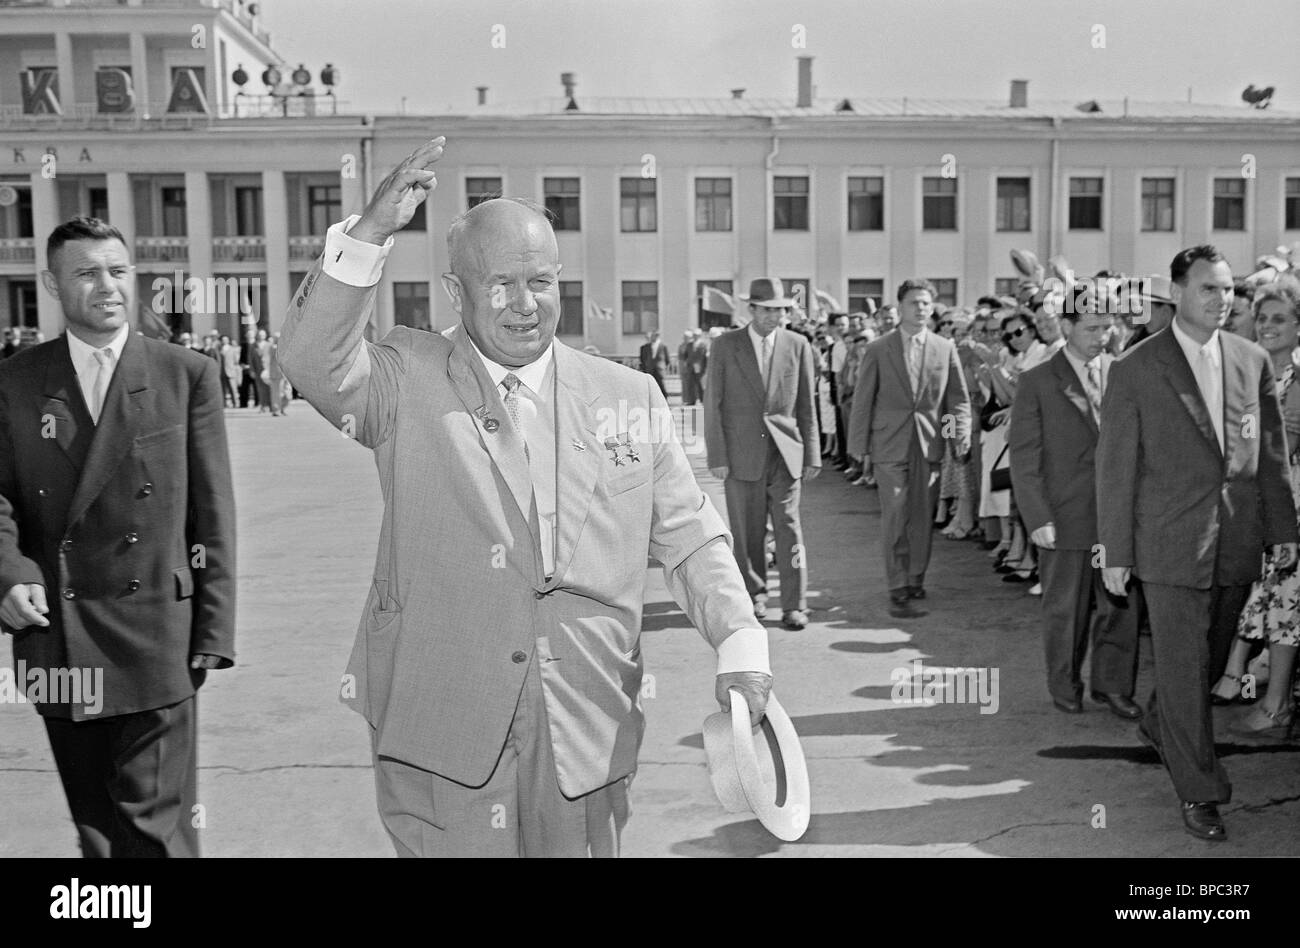 First Secretary of Central Committee of CPSU Nikita Khrushchev, 1959 Stock Photo